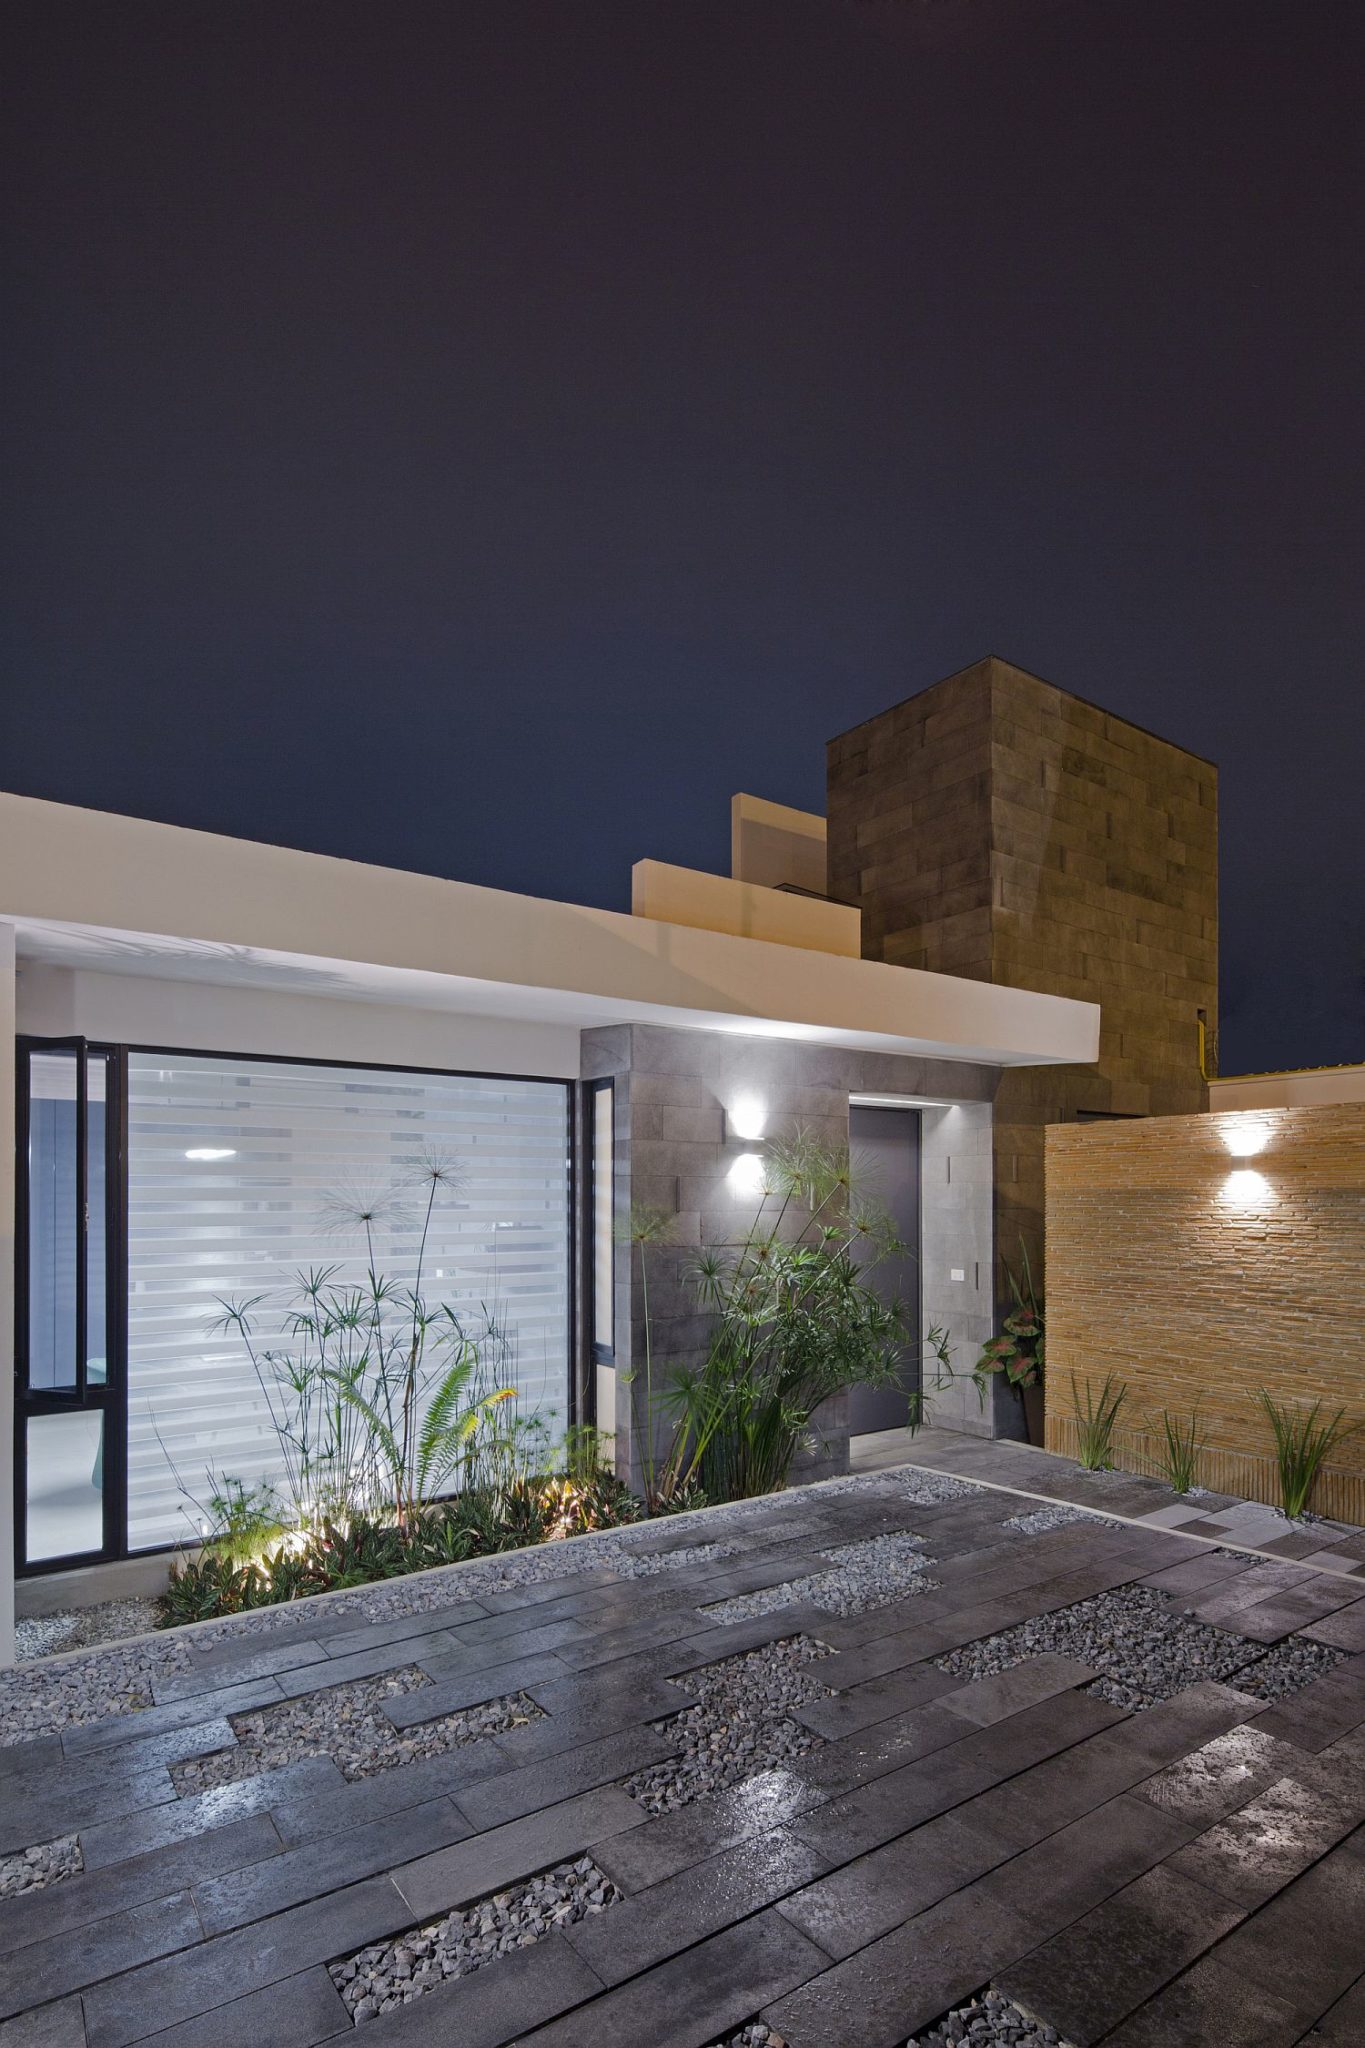 Generously illuminated deck of the house with natural finishes